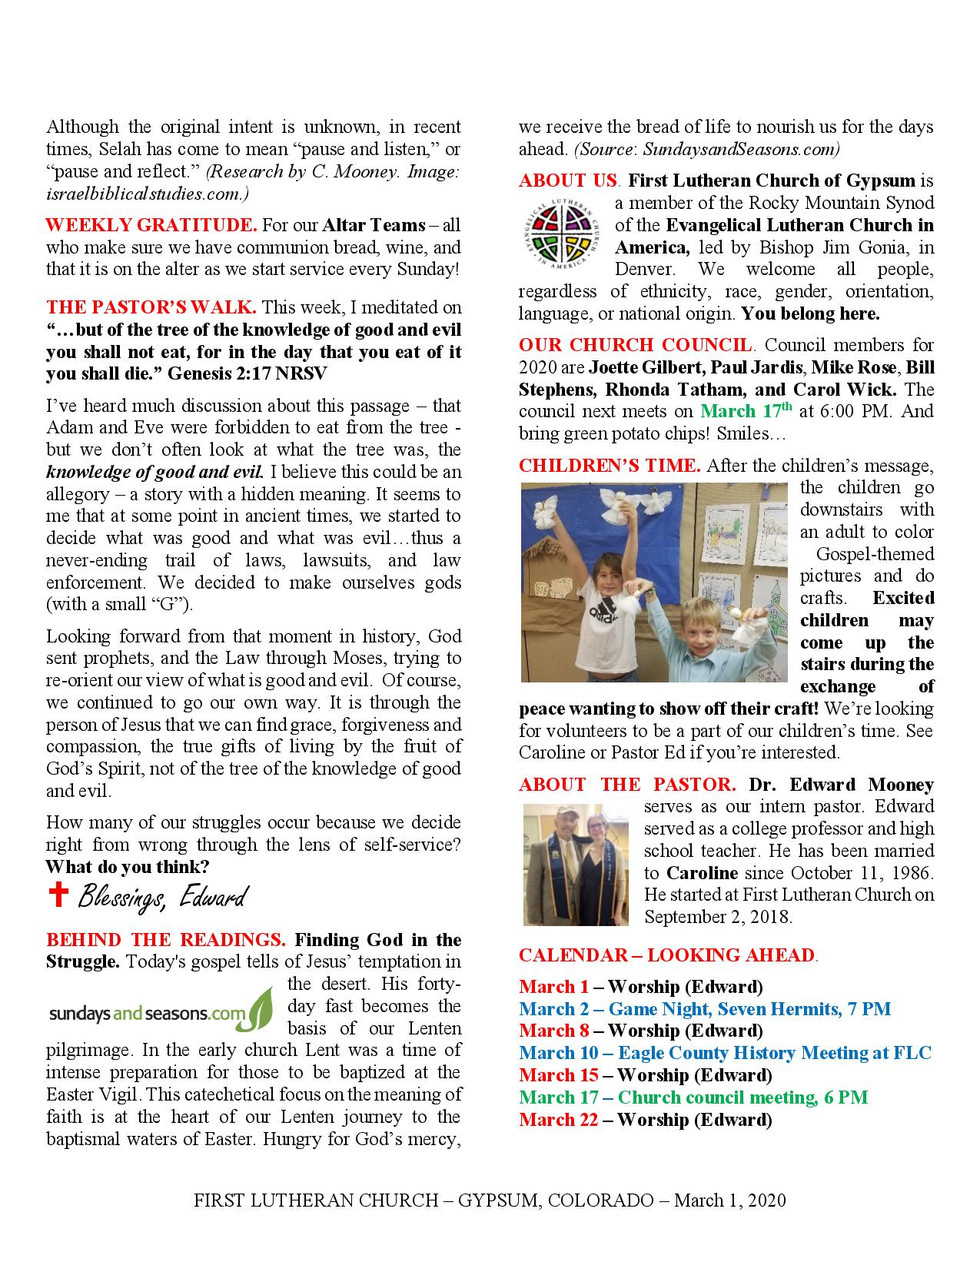 Newsletter, March 1, 2020, page 2